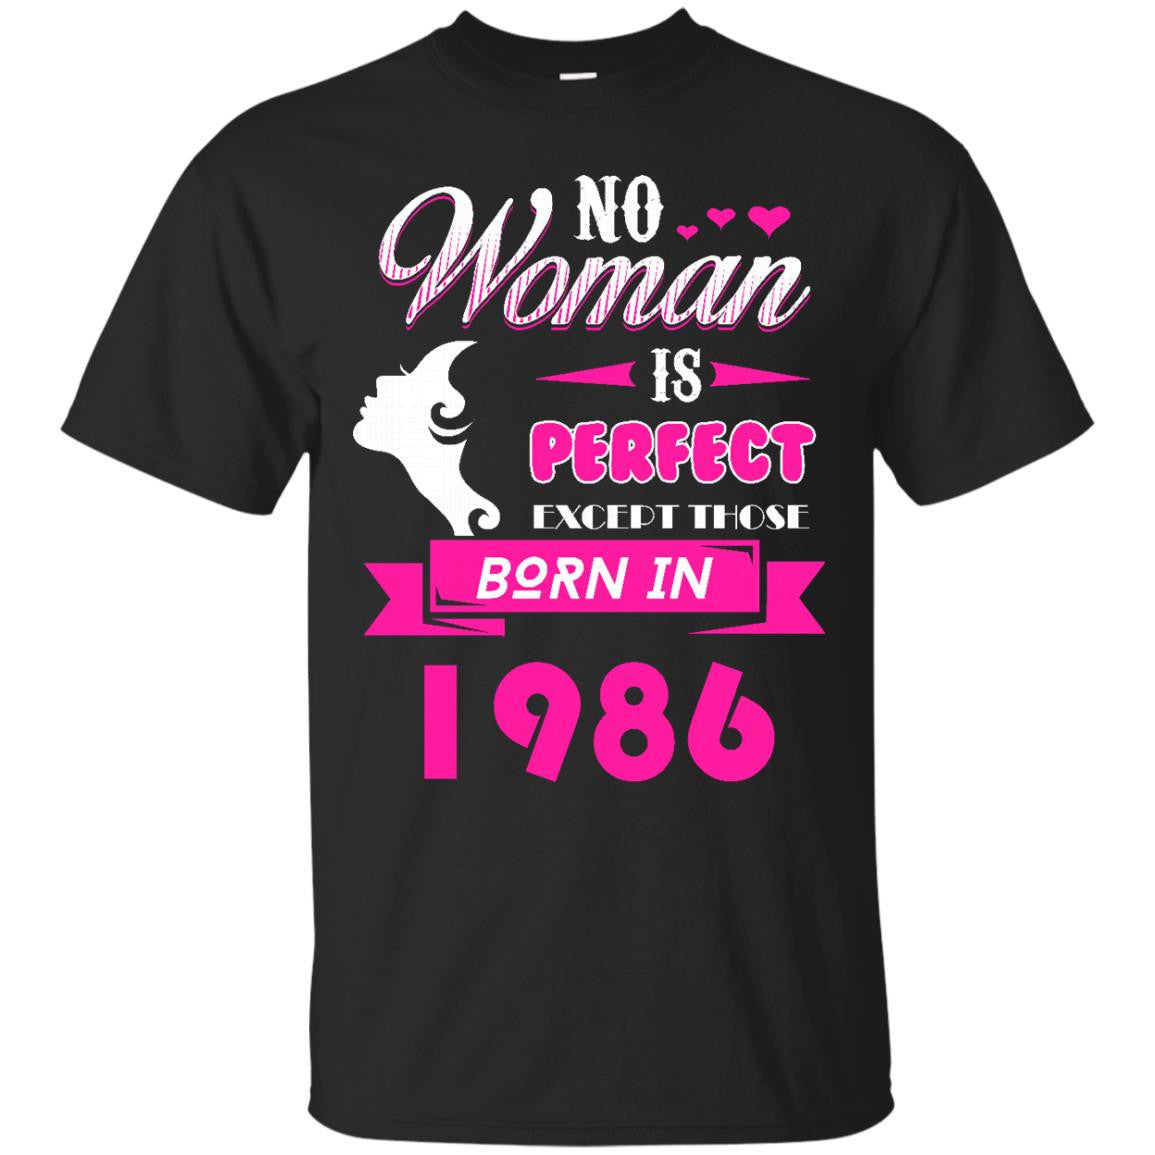 1986 Woman Shirts No Woman Perfect Except Those In 1986 T-shirts Hoodies Sweatshirts